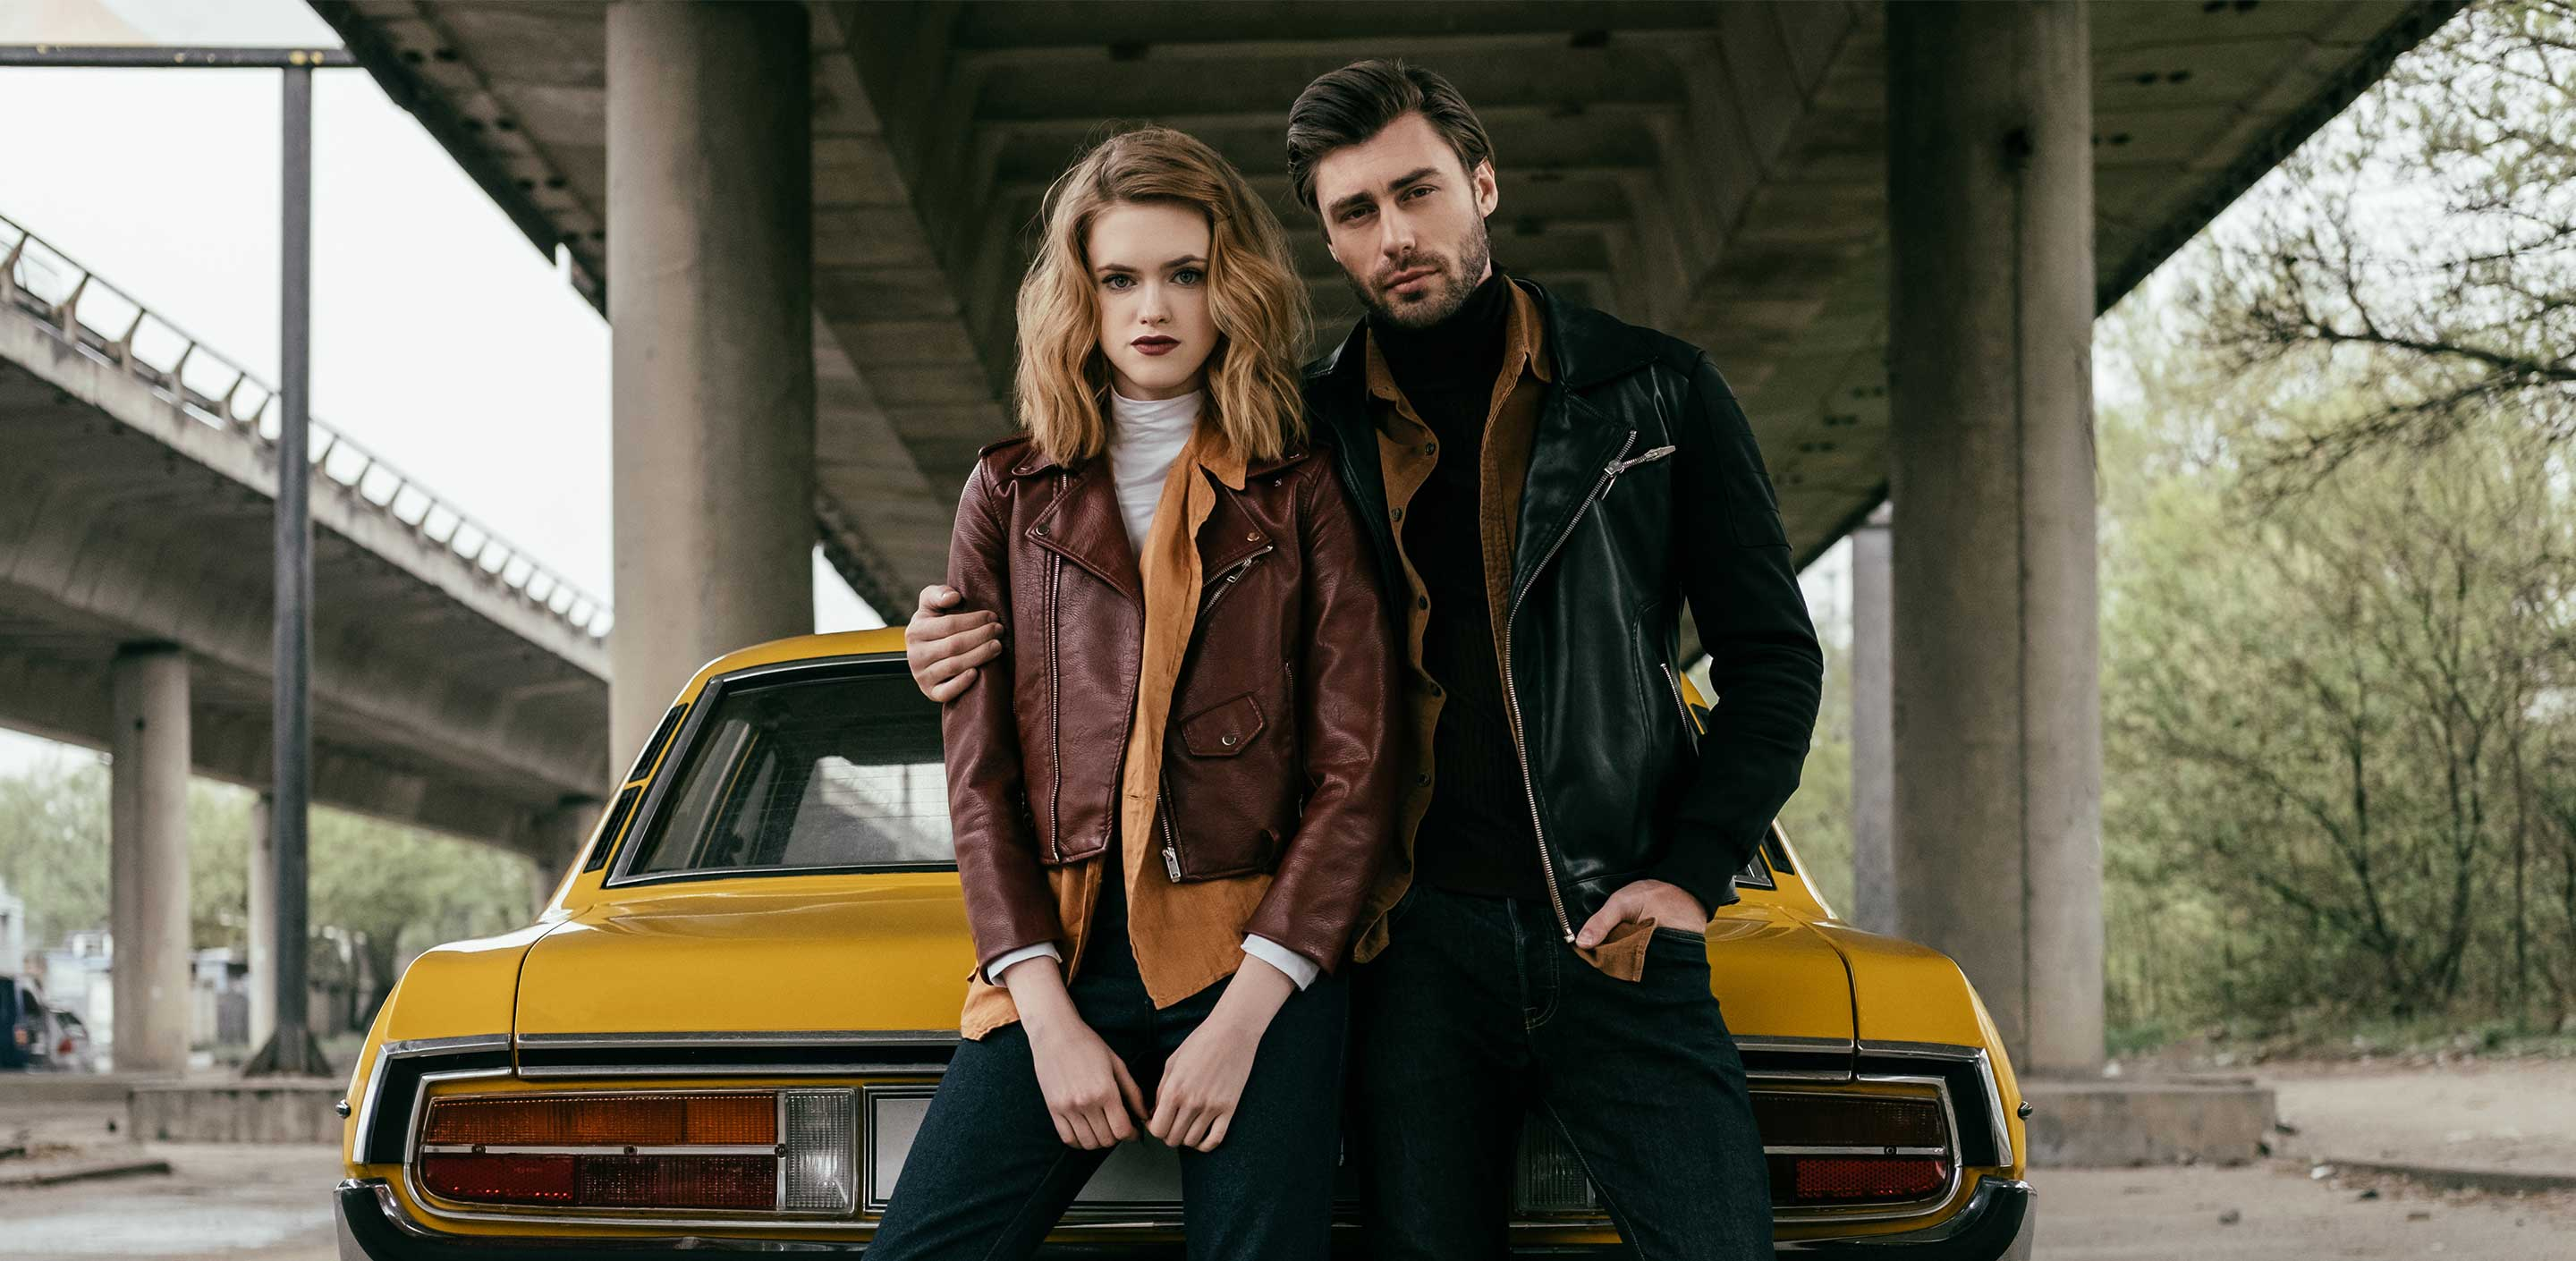 Lightweight Leather Jackets For Every Season